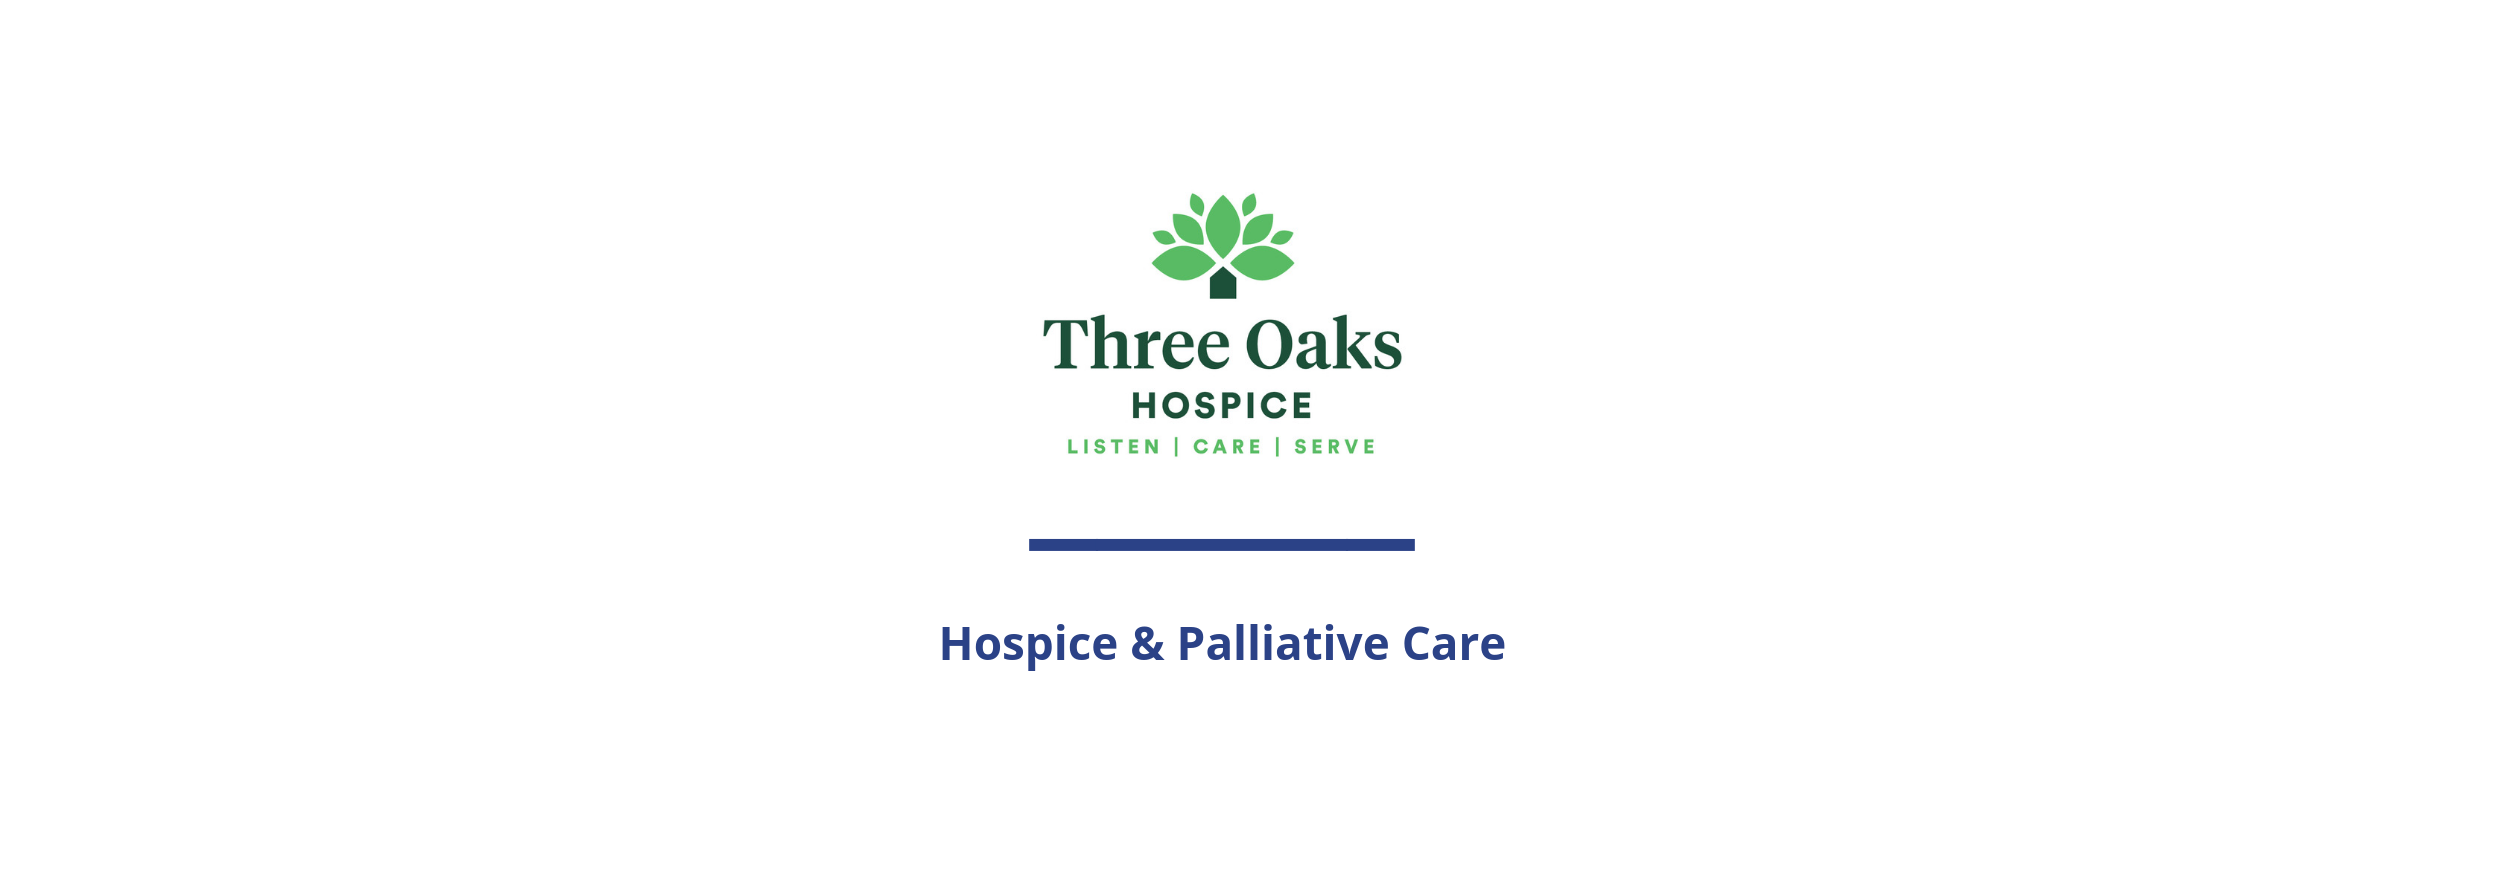 Three Oaks Hospice Scrolling.png